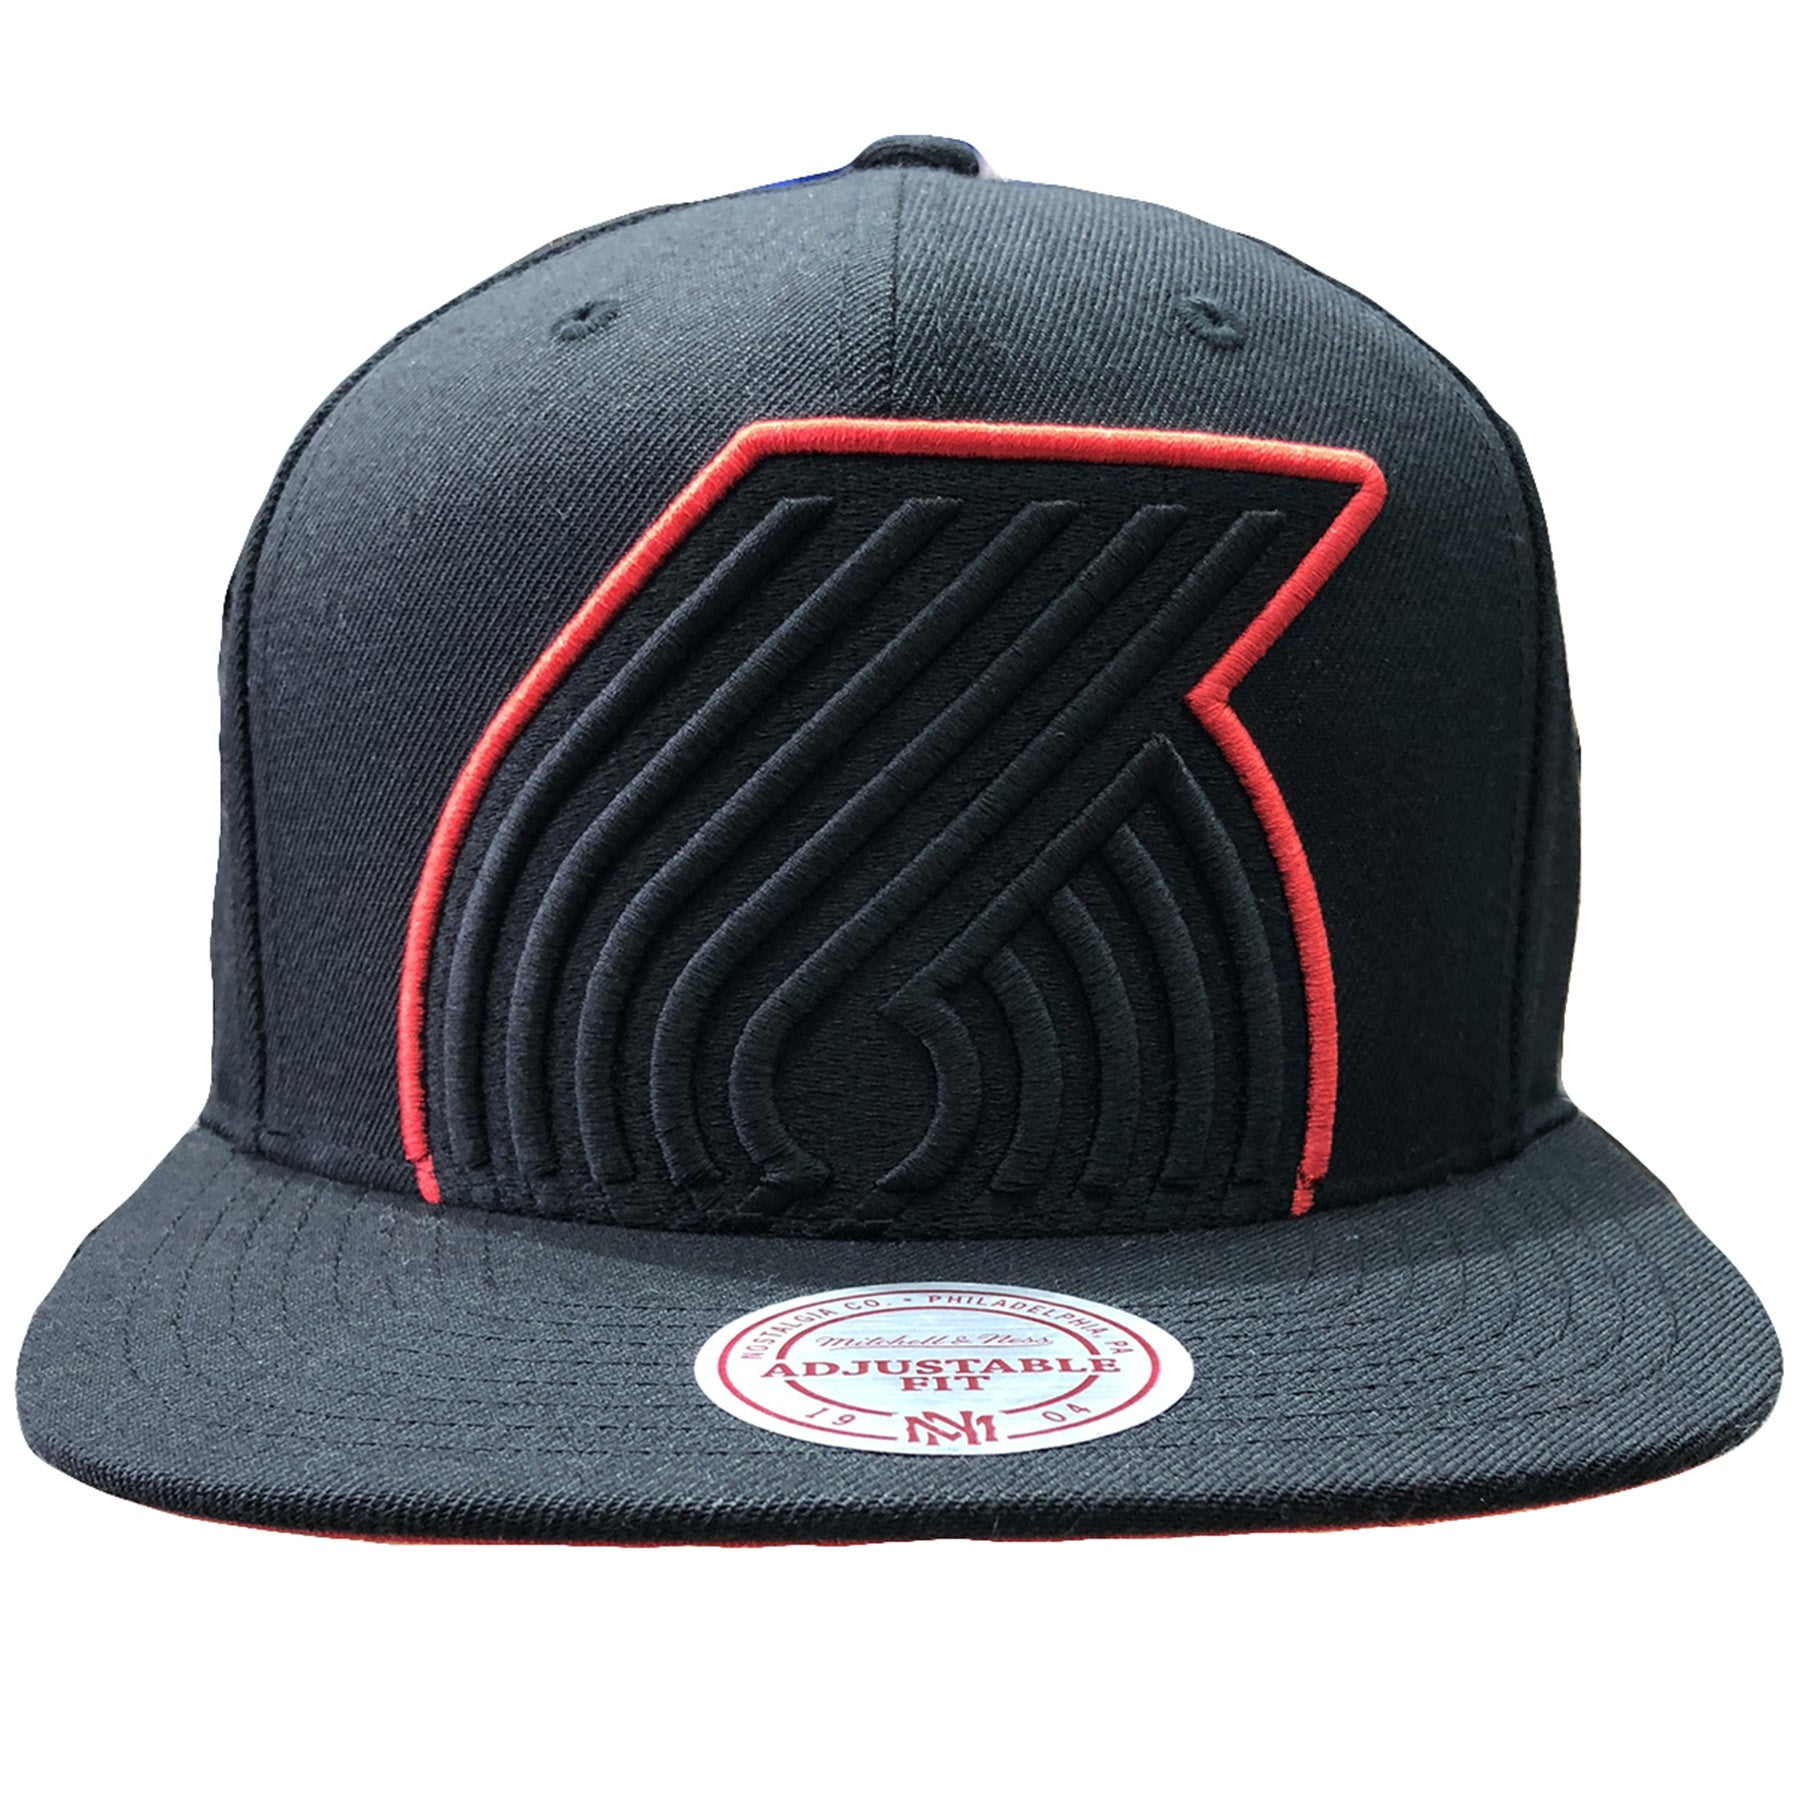 new styles 165ea bd4ef Embroidered on the front of the Portland Trail Blazers mitchell and ness  snapback hat is the